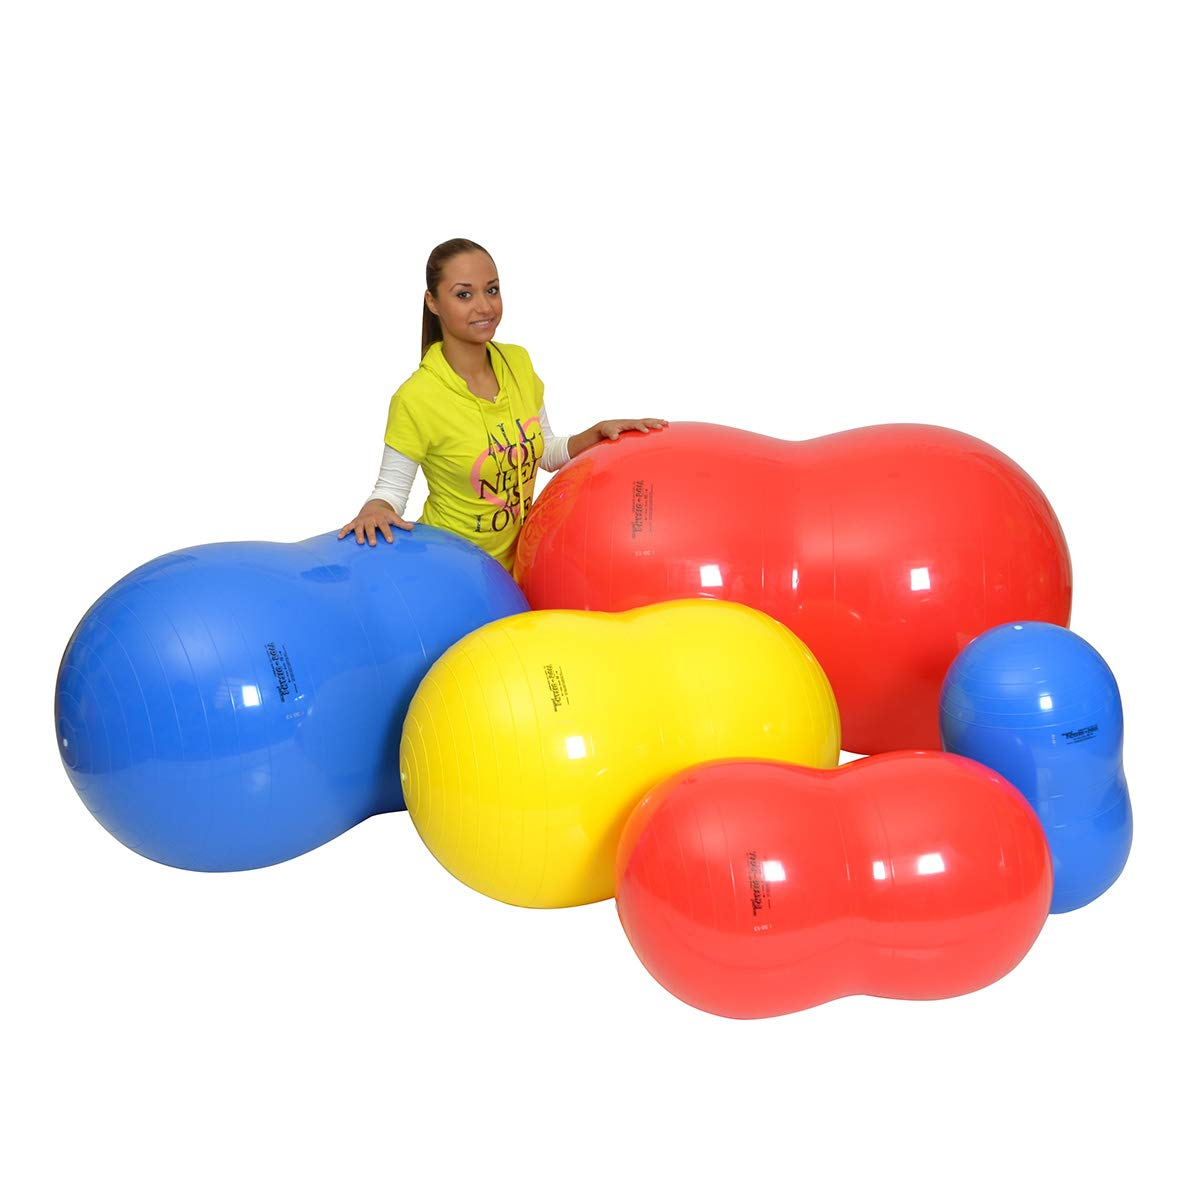 Gymnic Physio Roll Exercise Ball - Red by Gymnic (Image #6)